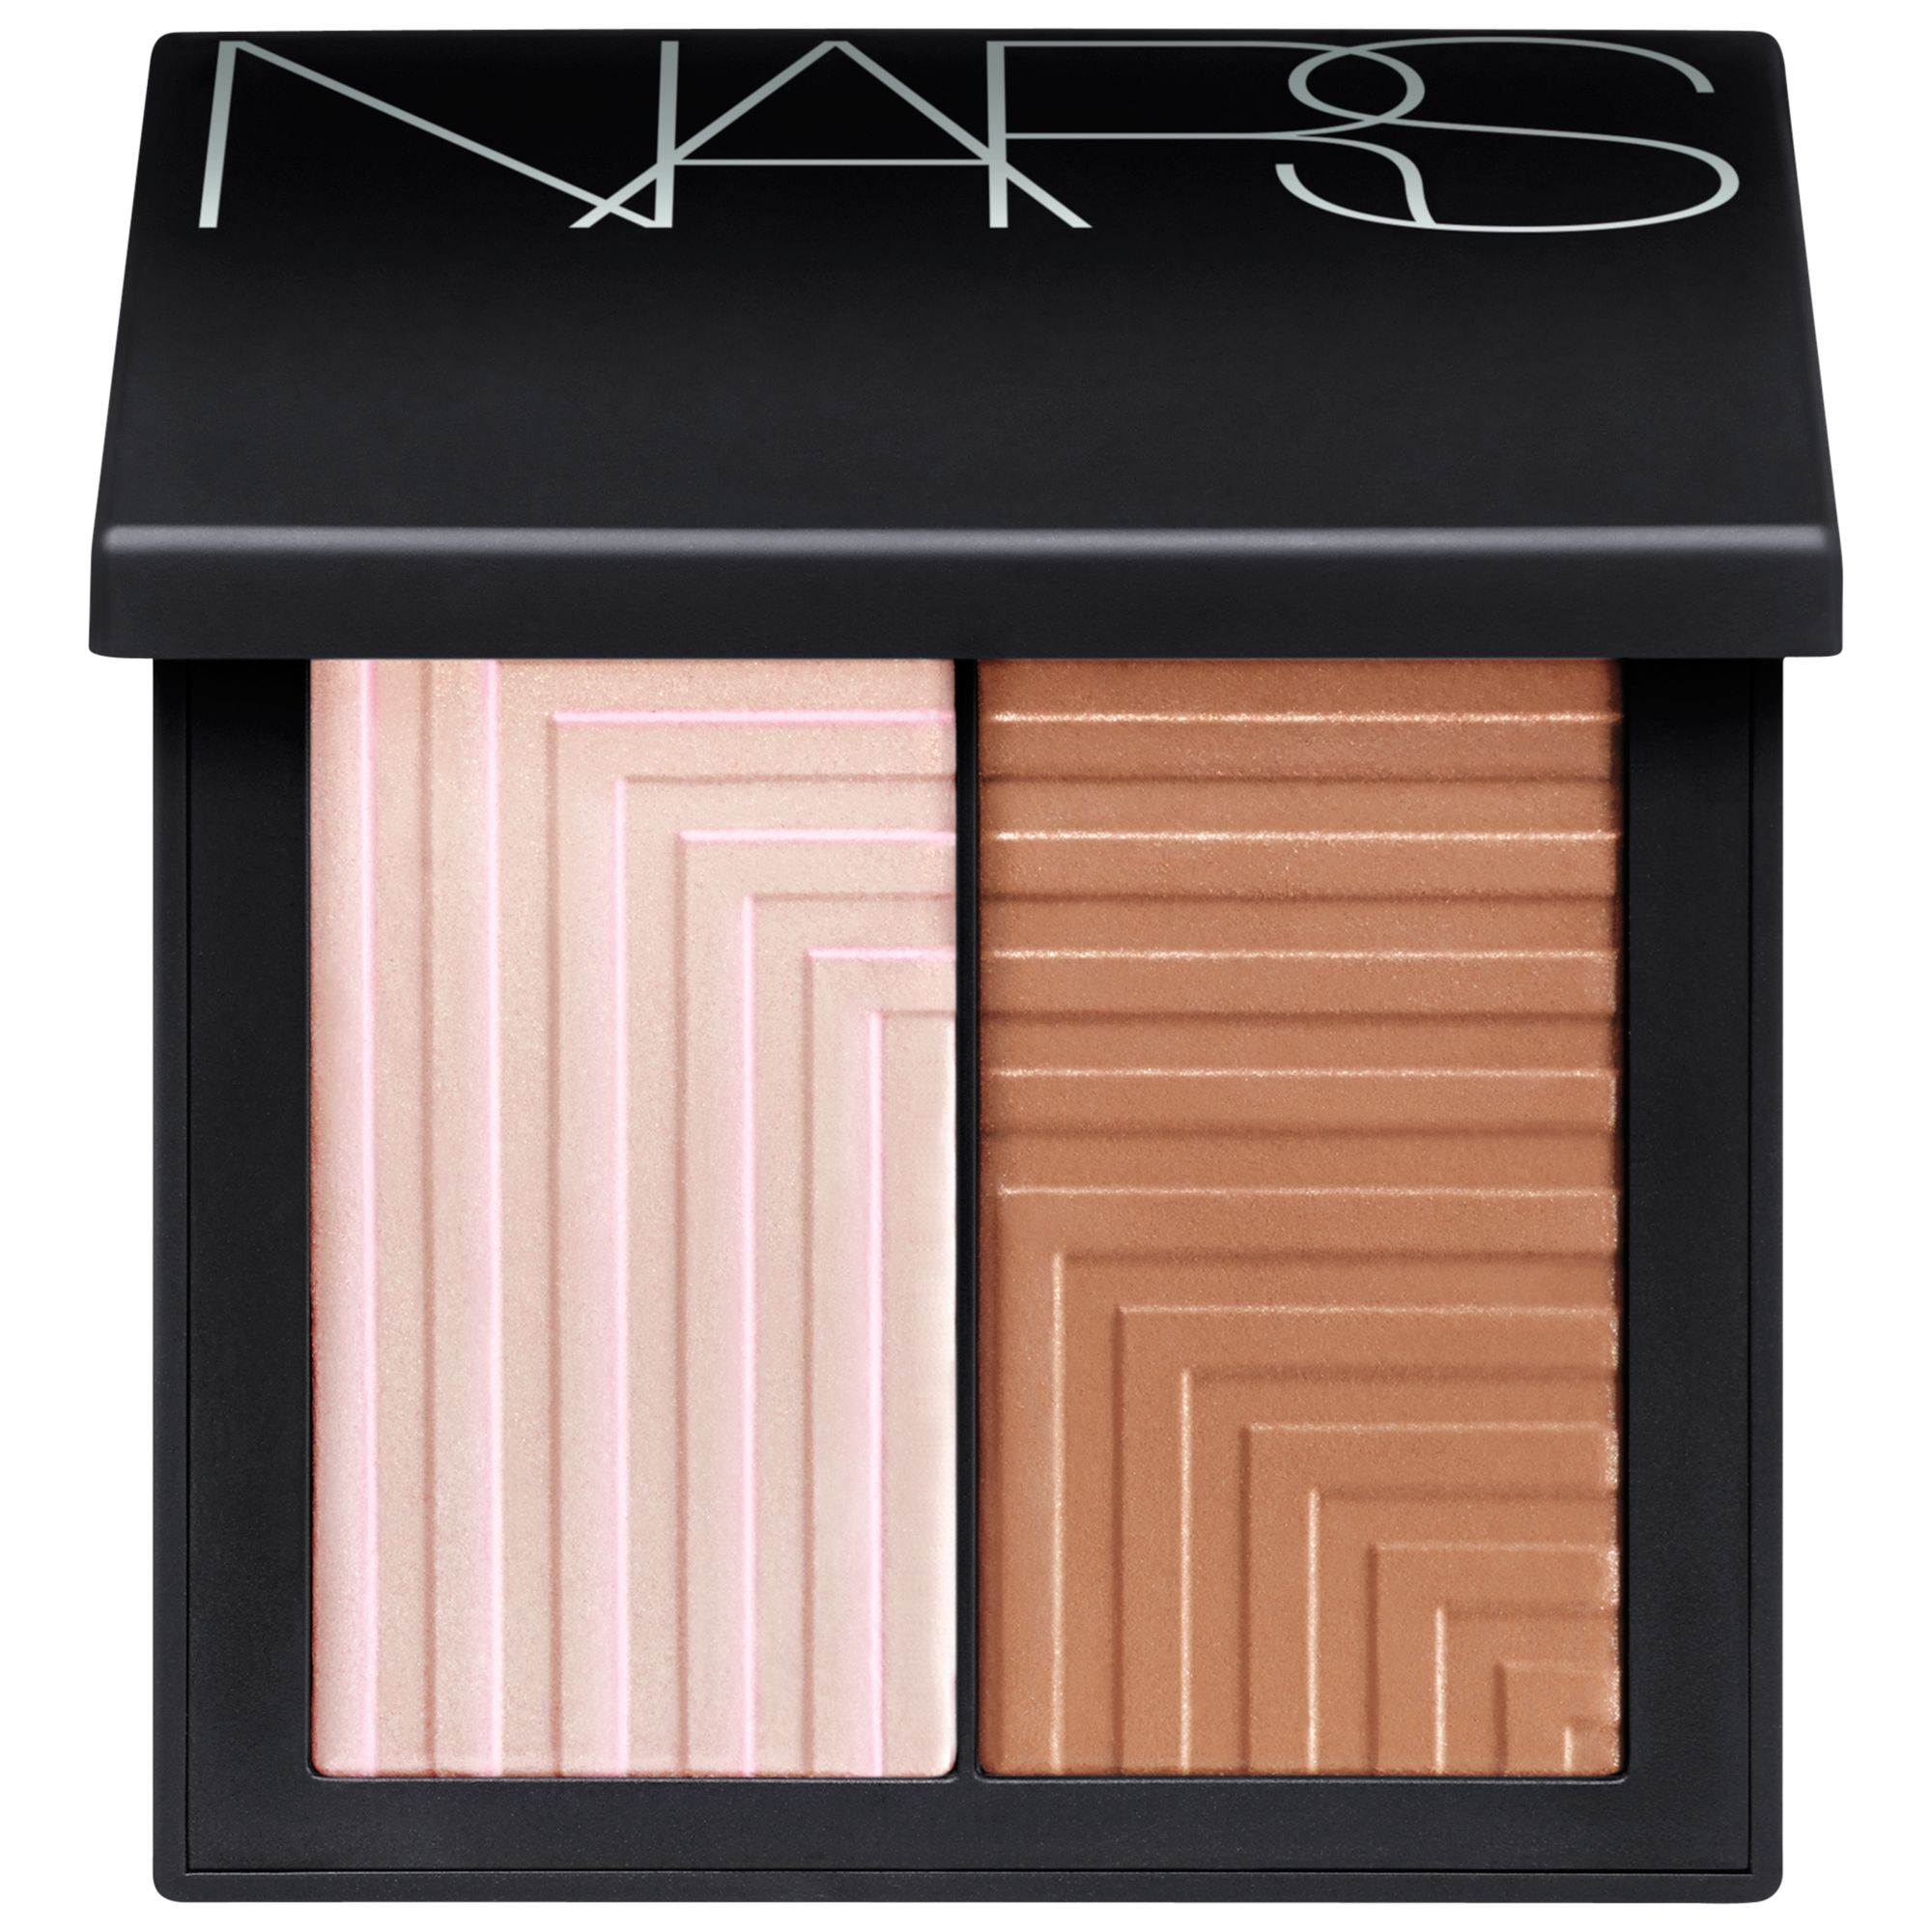 NARS NARS Dual Intensity Blush